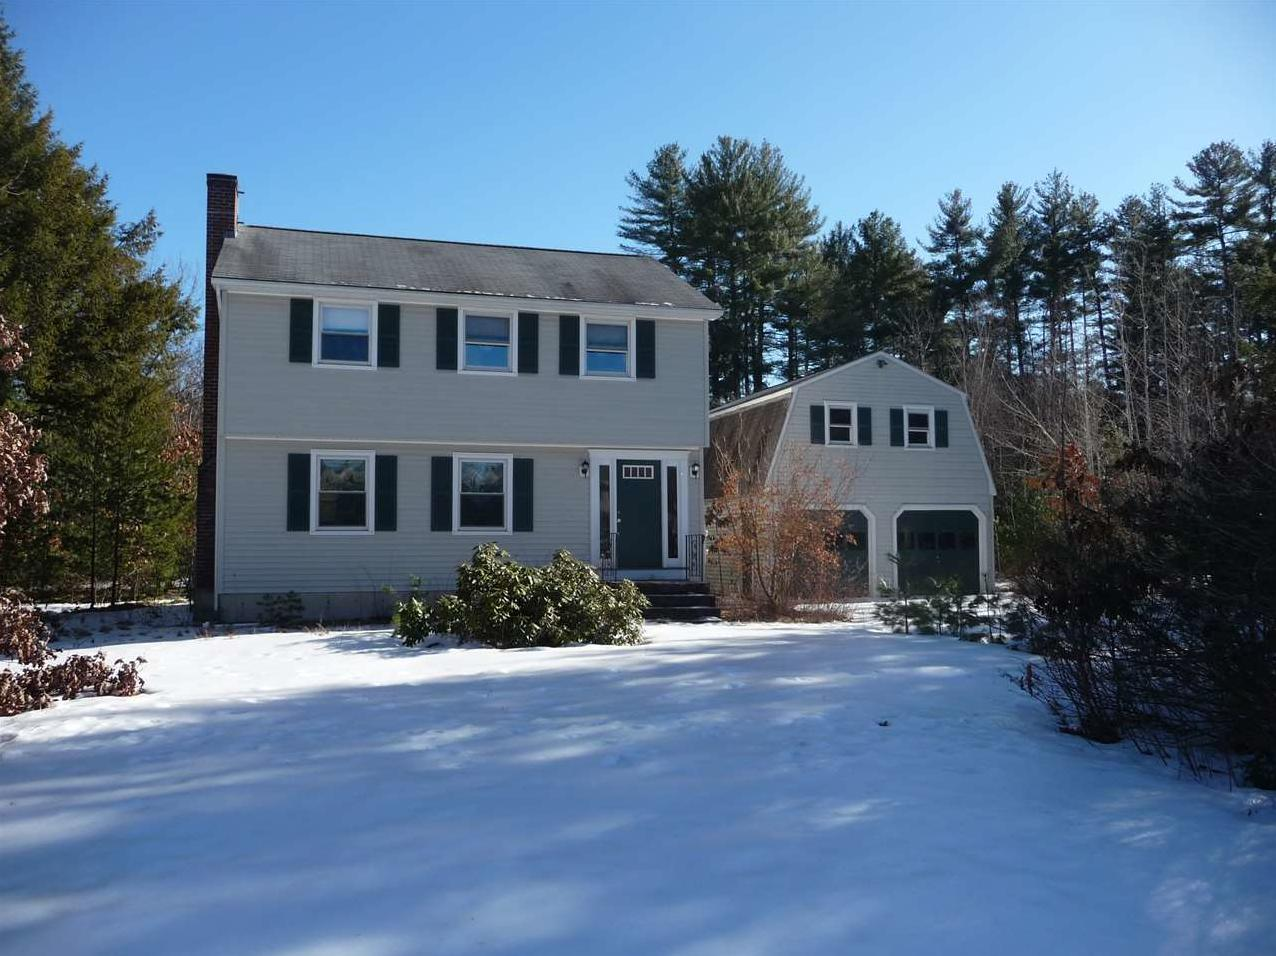 Photo of 18 Riverside Drive Merrimack, NH 03054-3821